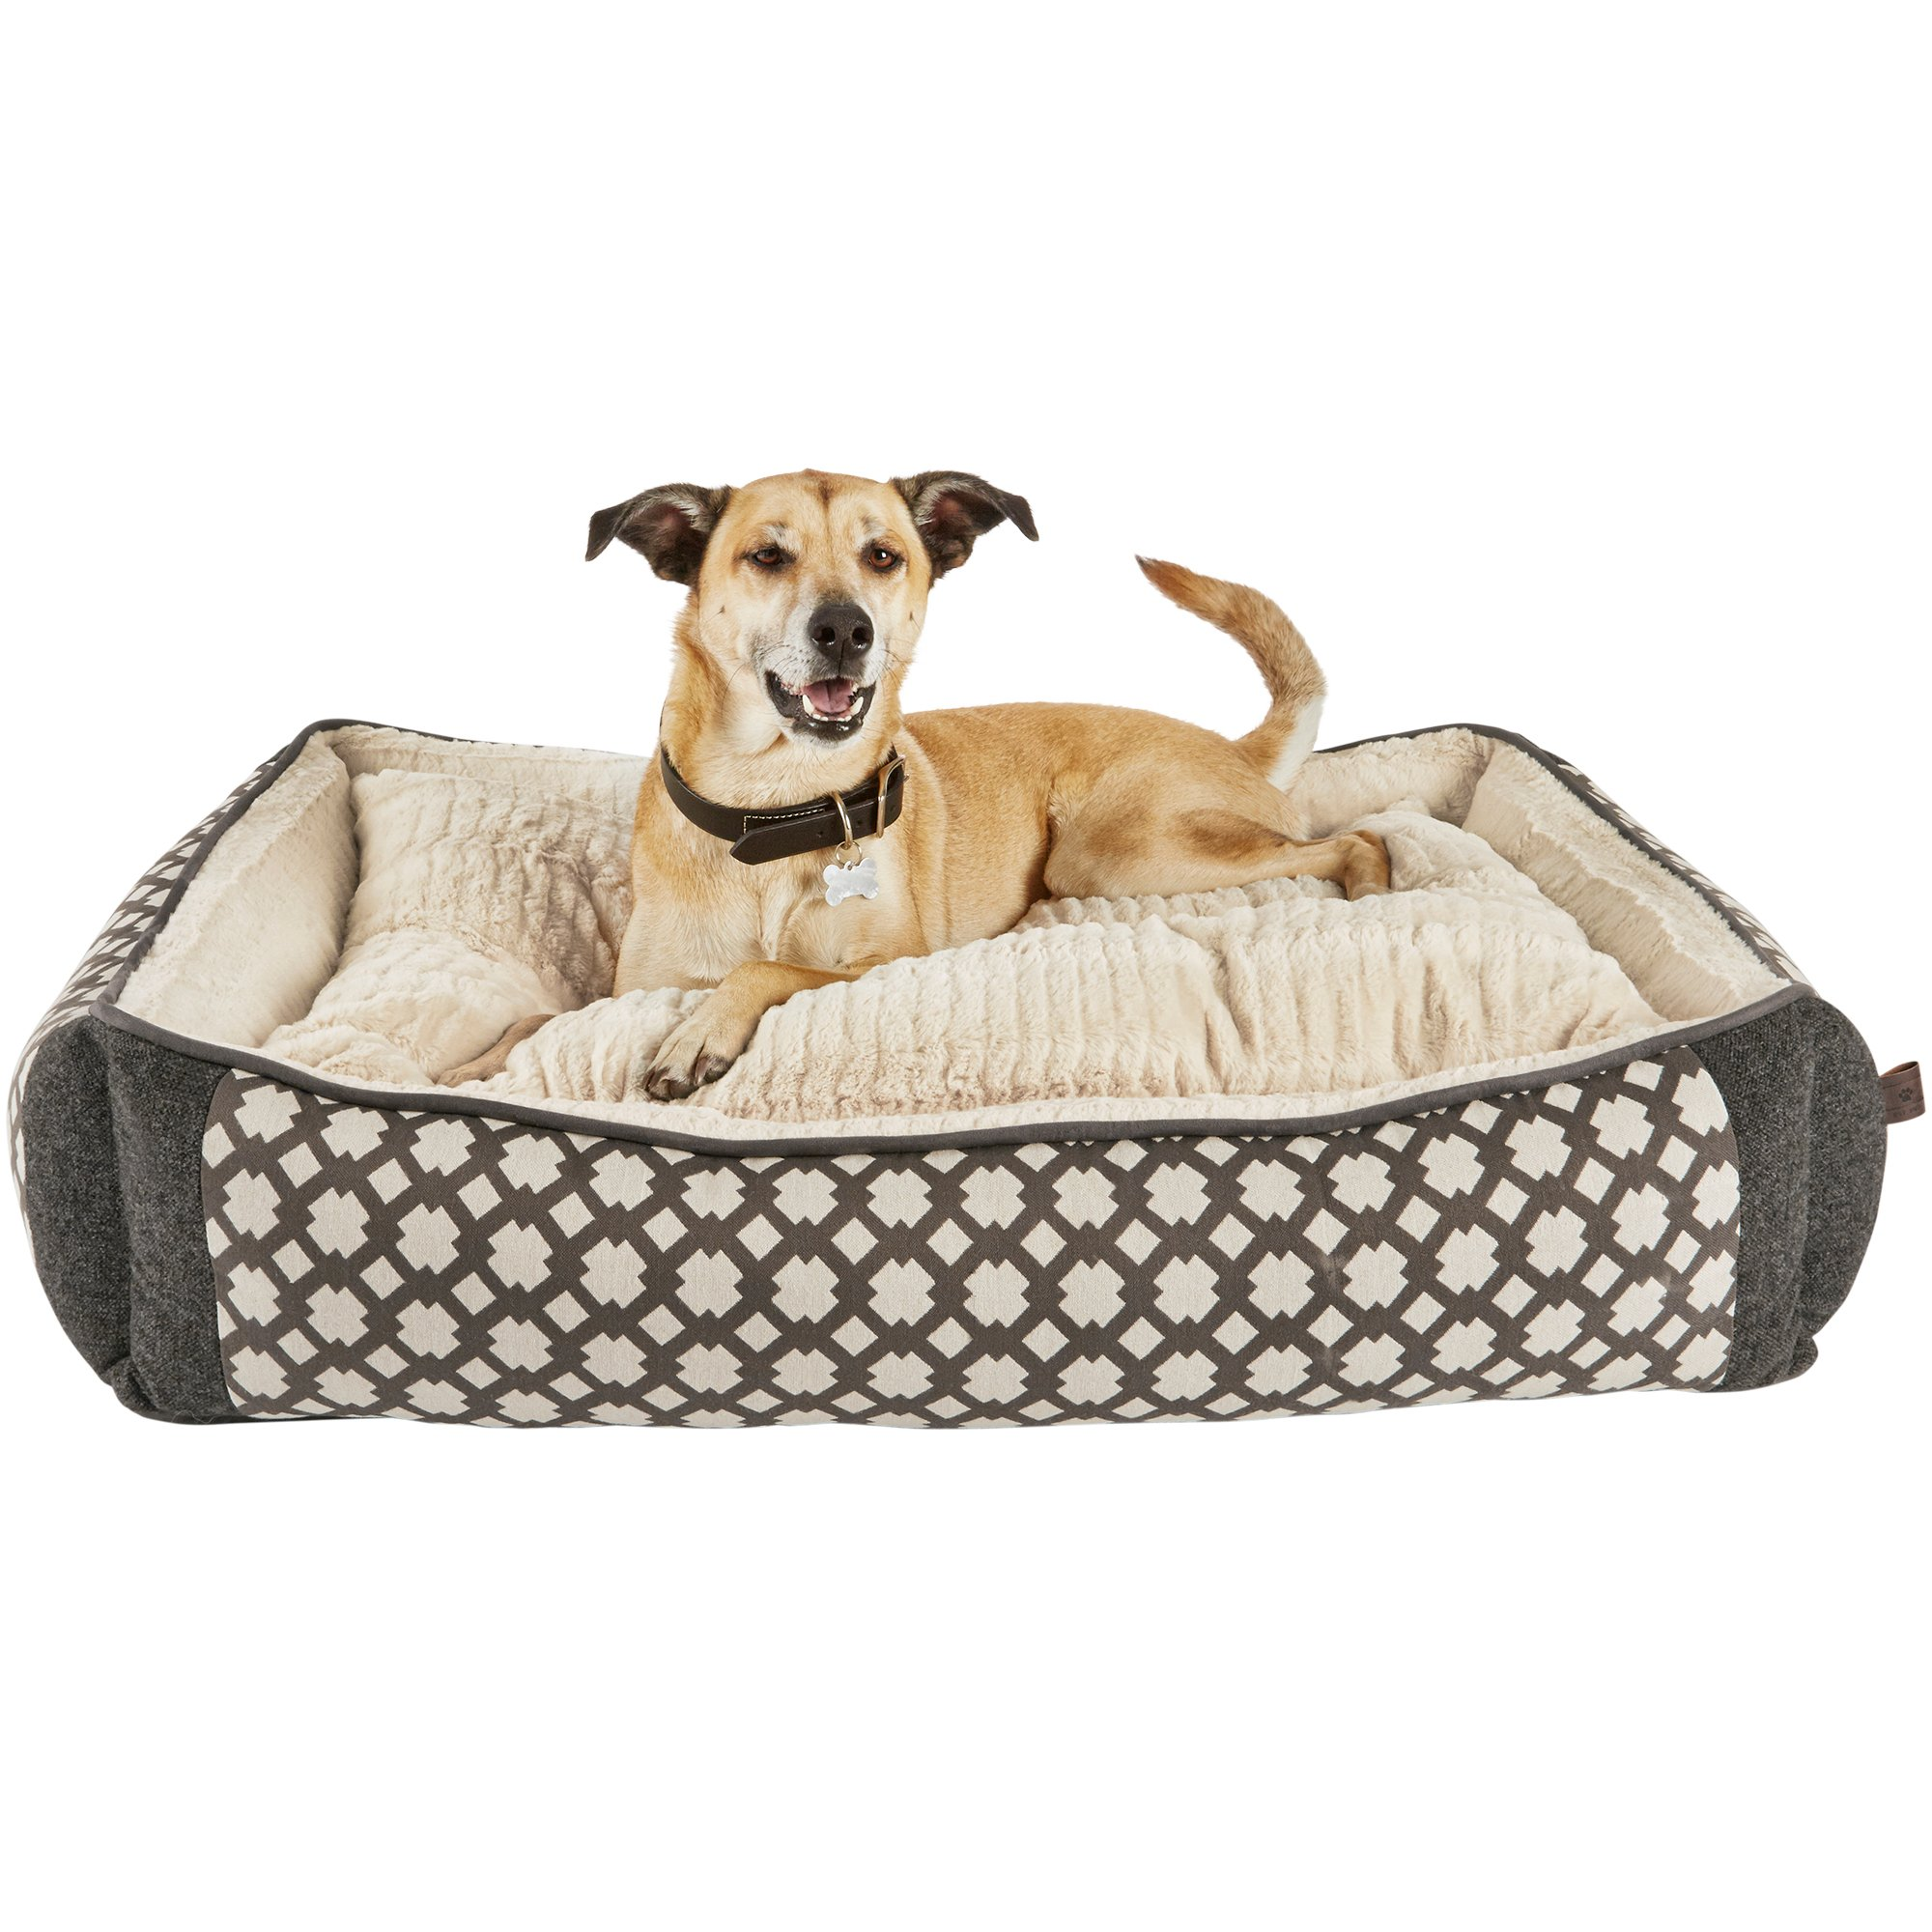 Dog Beds Pet Harmony Grey Nester Orthopedic Dog Bed Petco